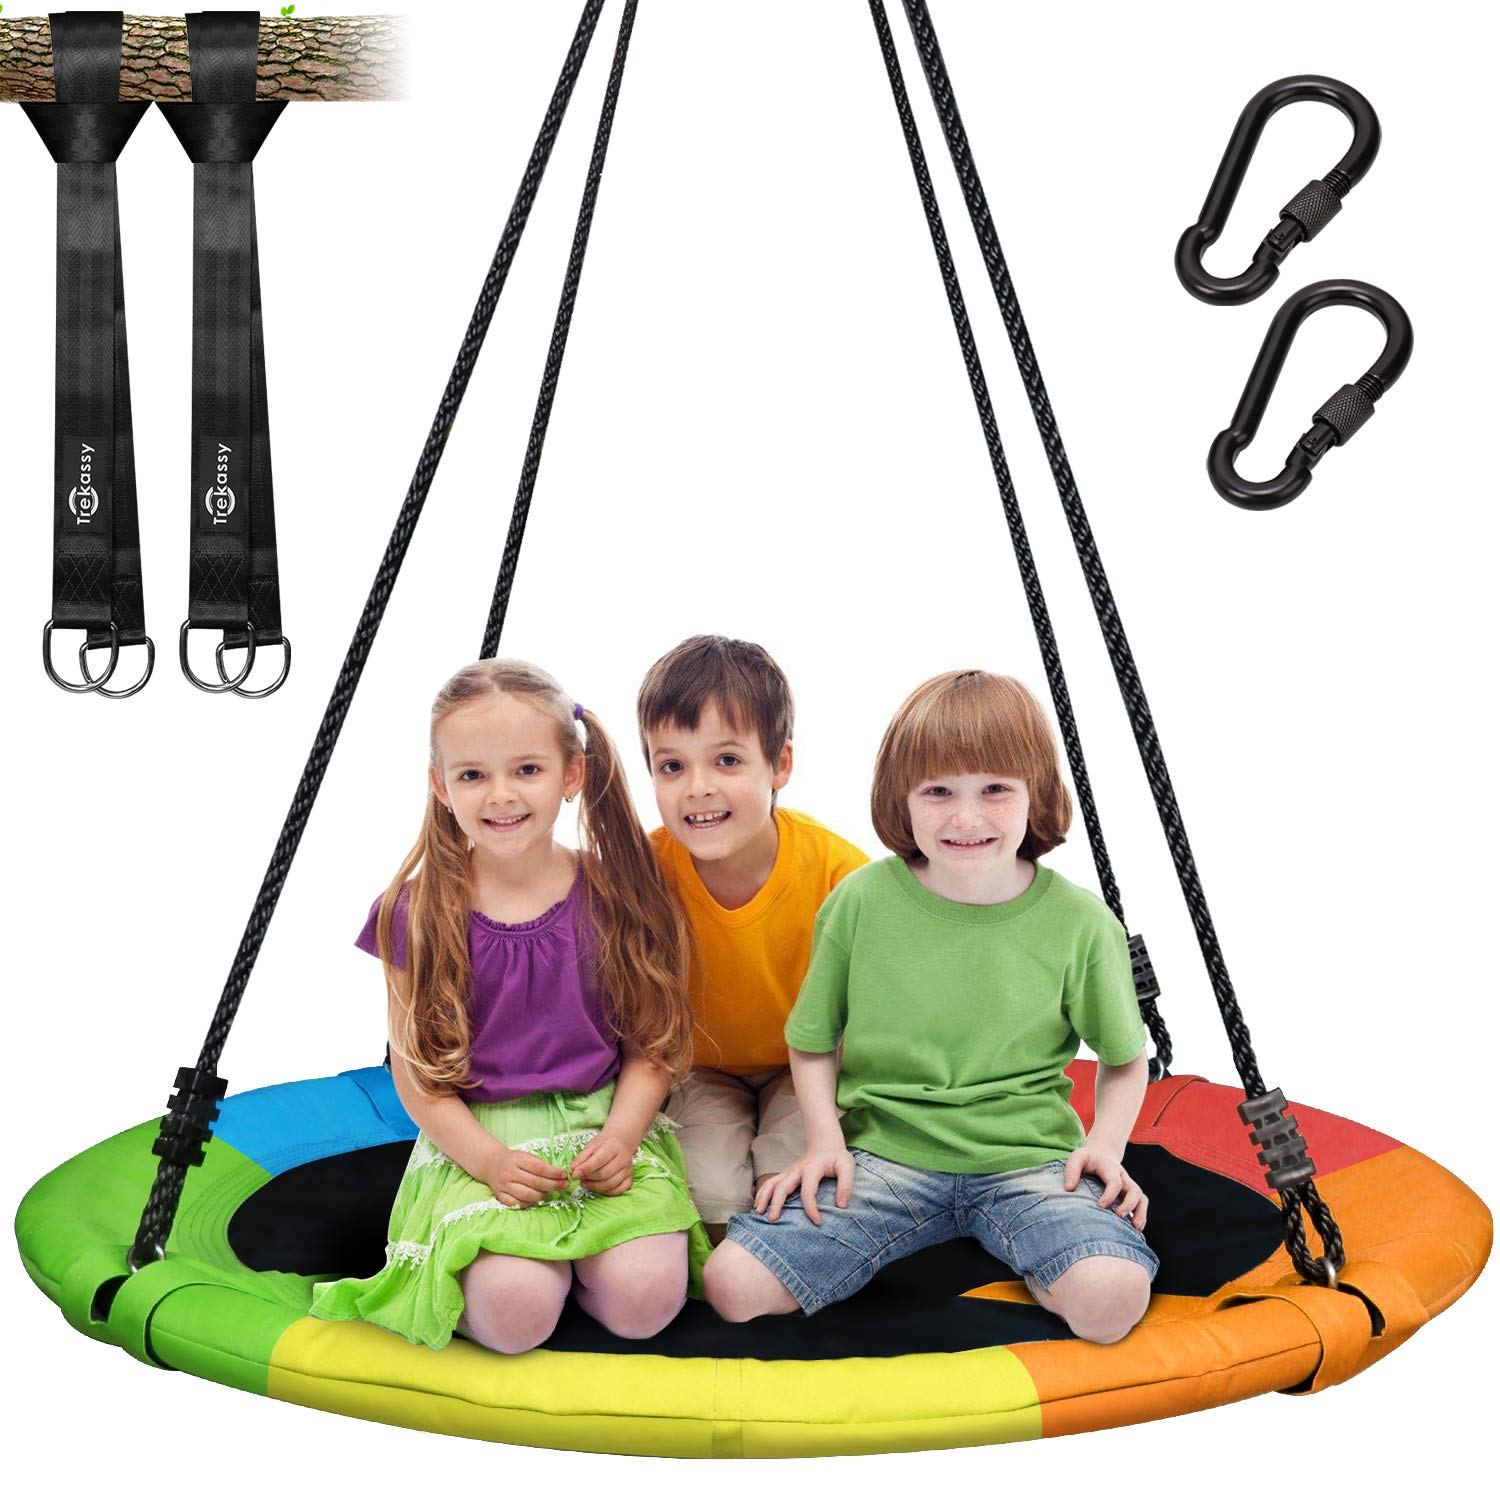 Trekassy 700 lb Saucer Tree Swing for Kids Adults 40 Inch 900D Oxford Waterproof Frame with 2 Hanging Straps - Rainbow by Trekassy (Image #1)